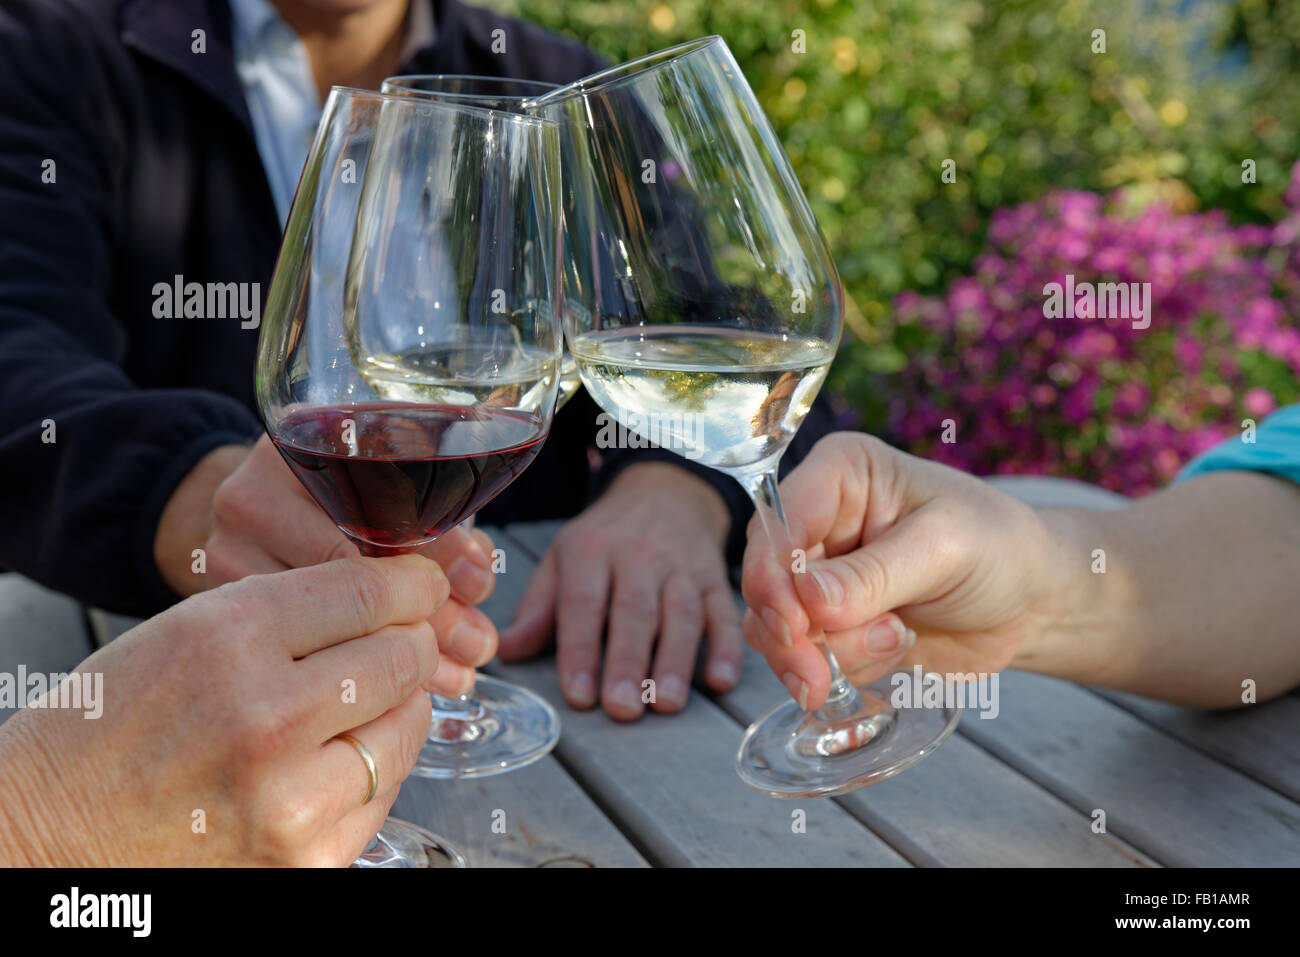 Three people clink their wine glasses, Törggelen, Eisacktal, South Tyrol, Alto Adige, Italy - Stock Image